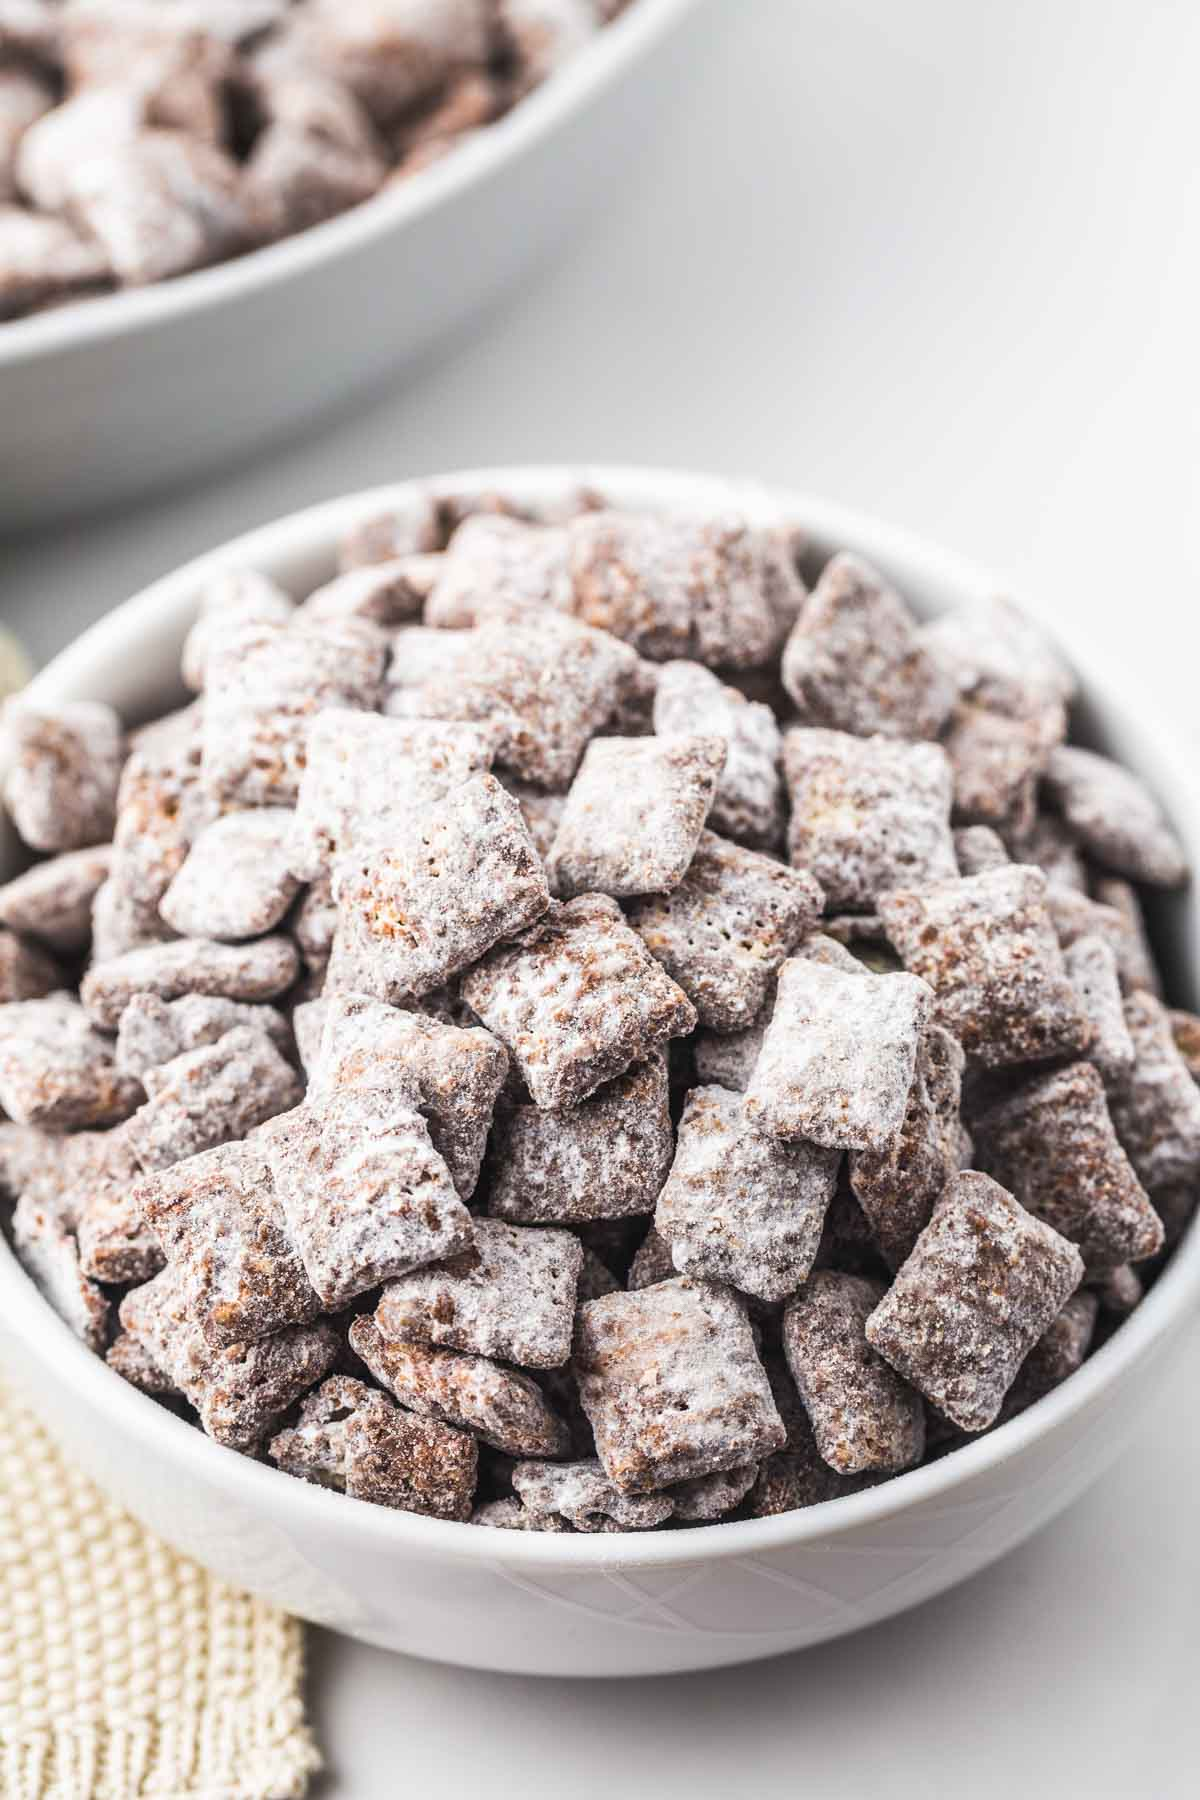 Puppy chow served in a small white bowl